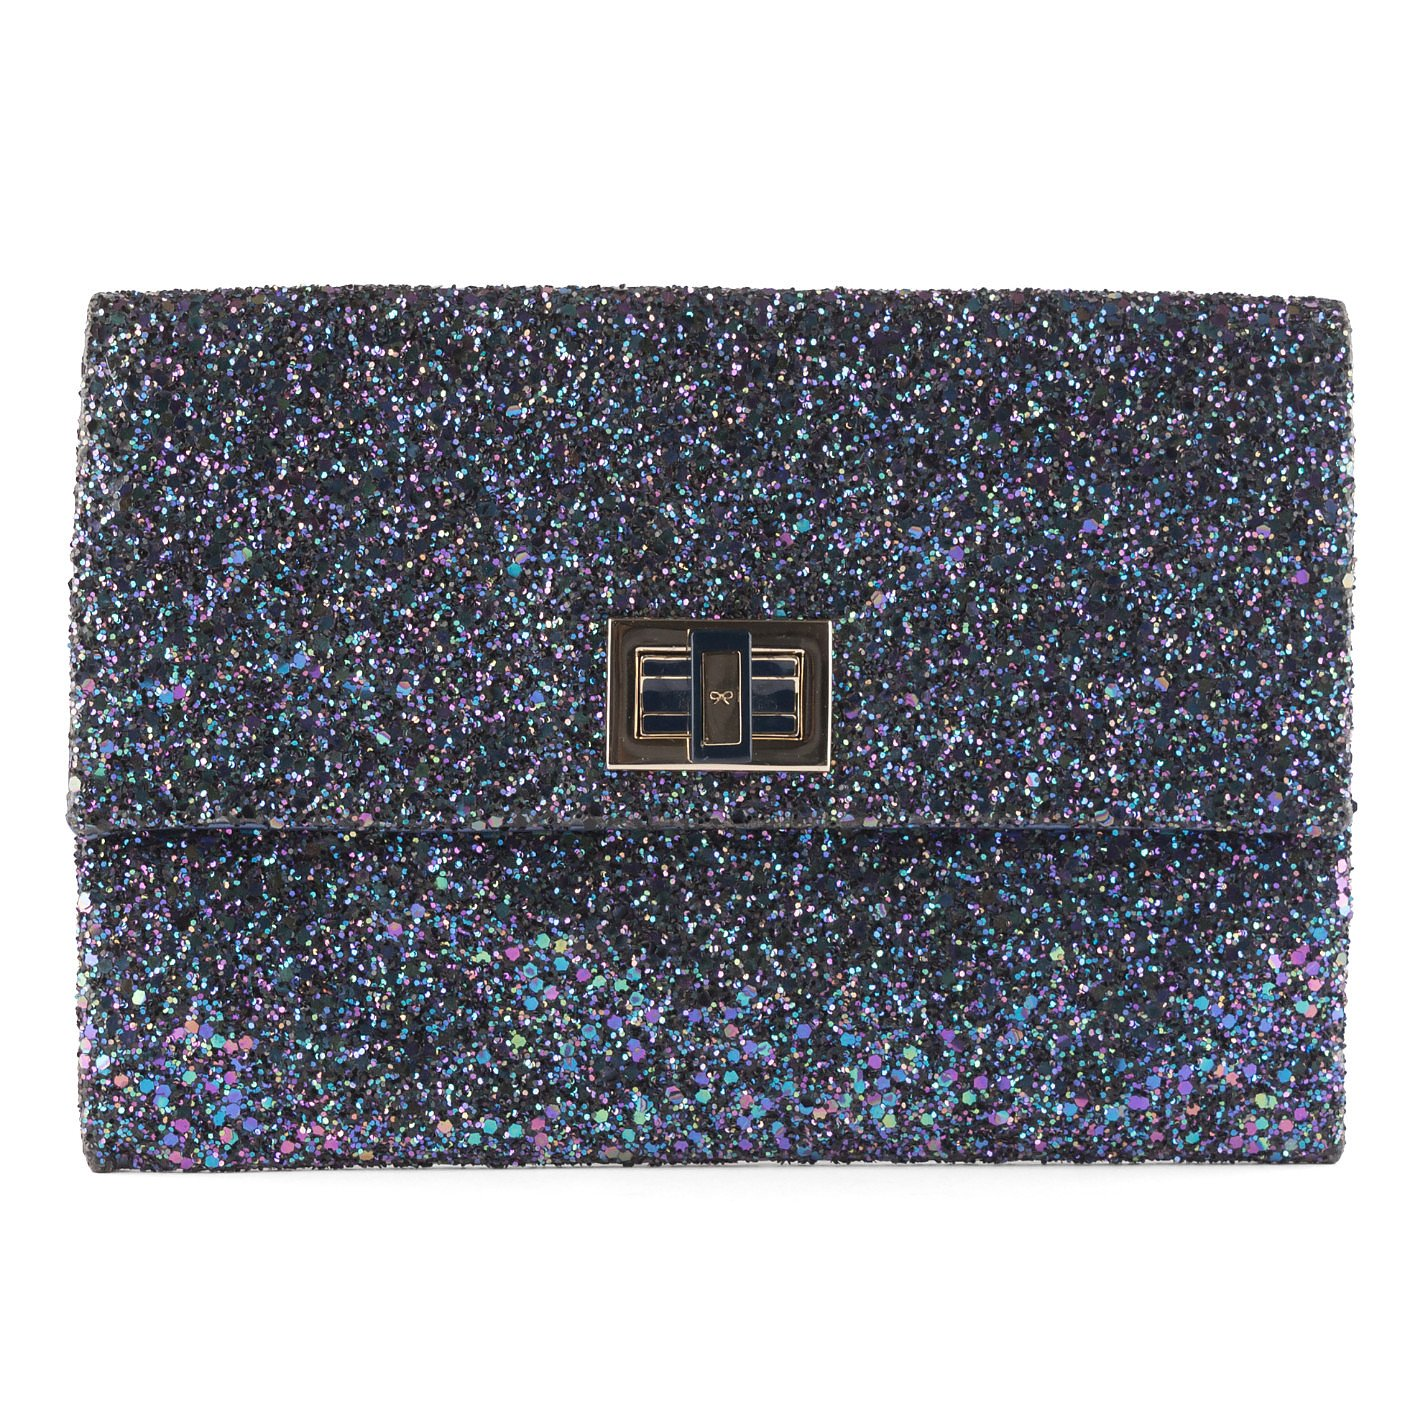 Anya Hindmarch Sequinned Clutch Bag